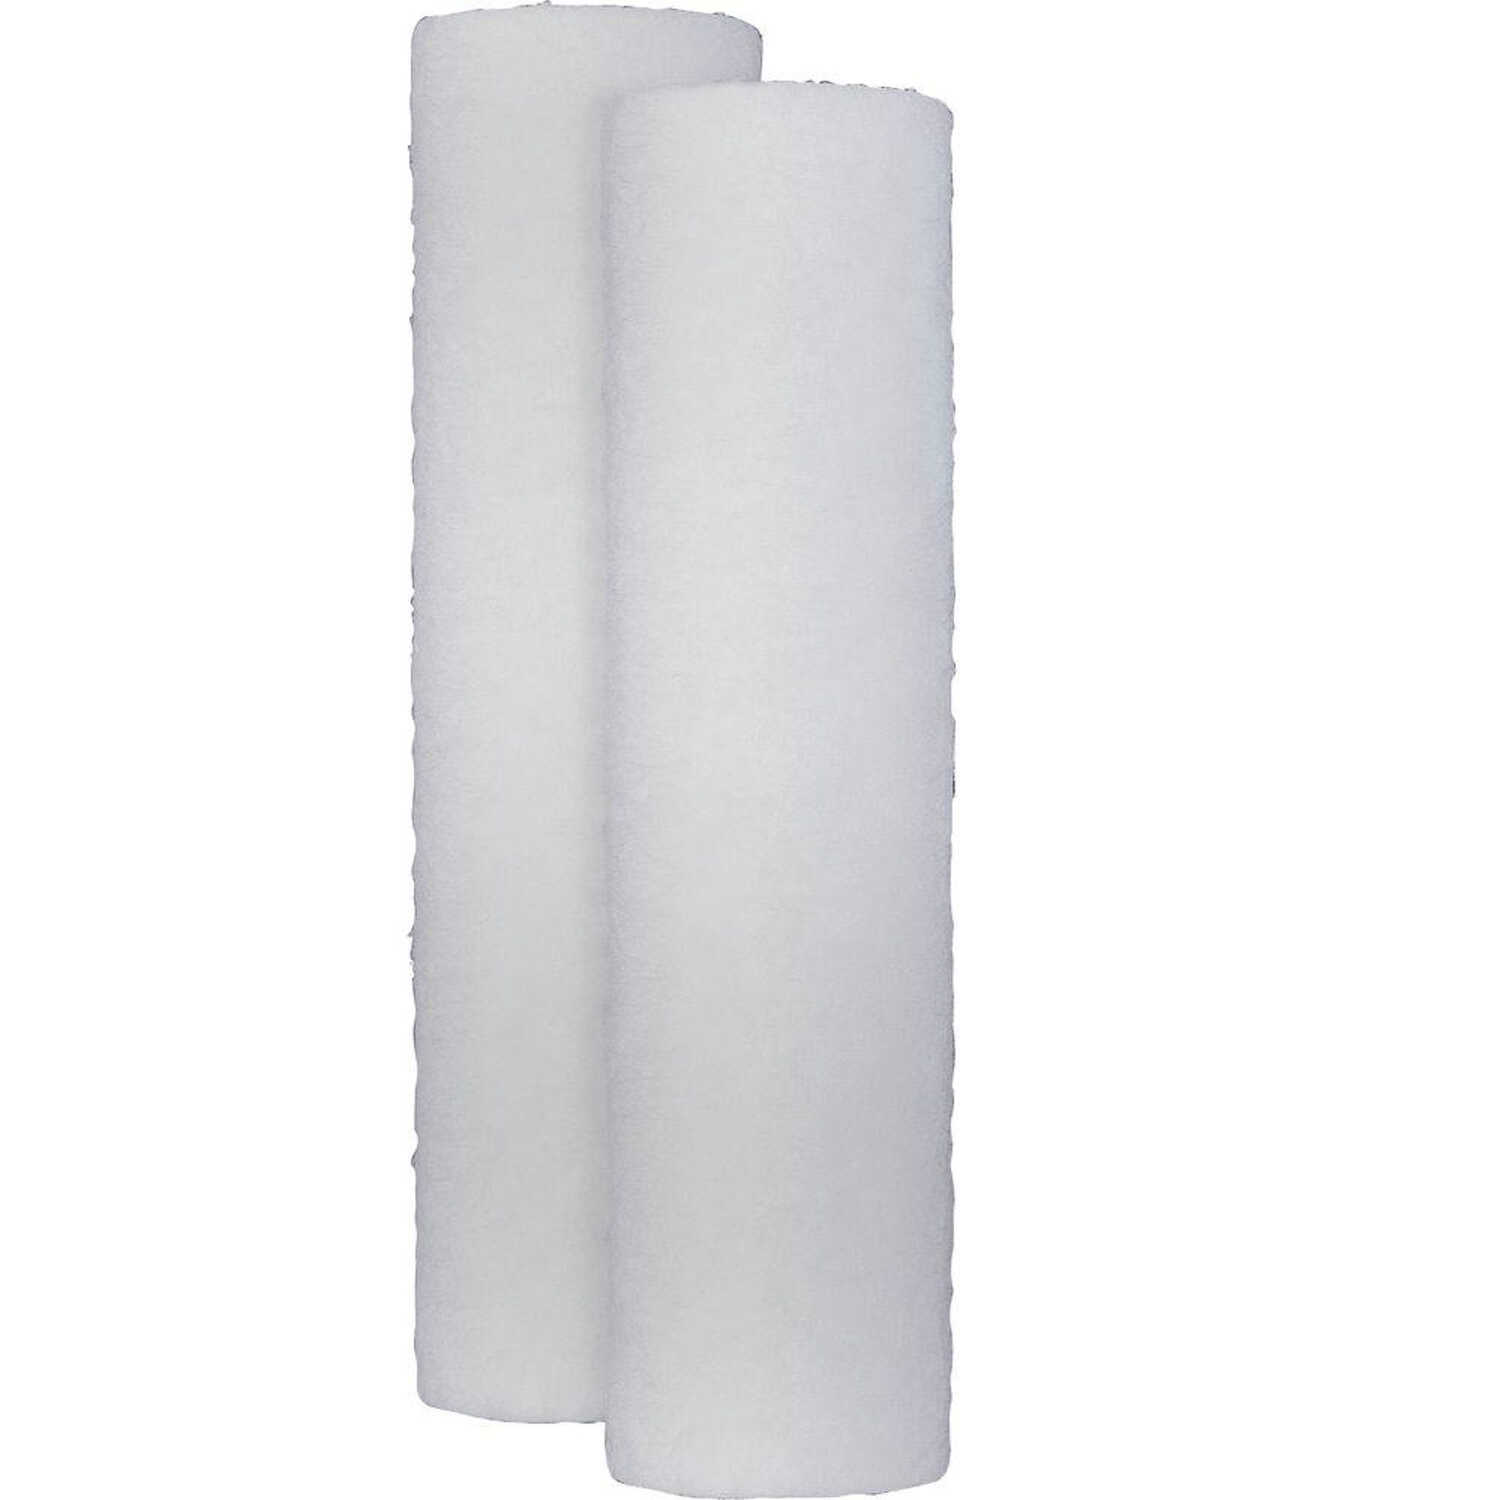 GE Appliances  For Whole House Replacement Filter  For GE GXWH04F, GXWH20S